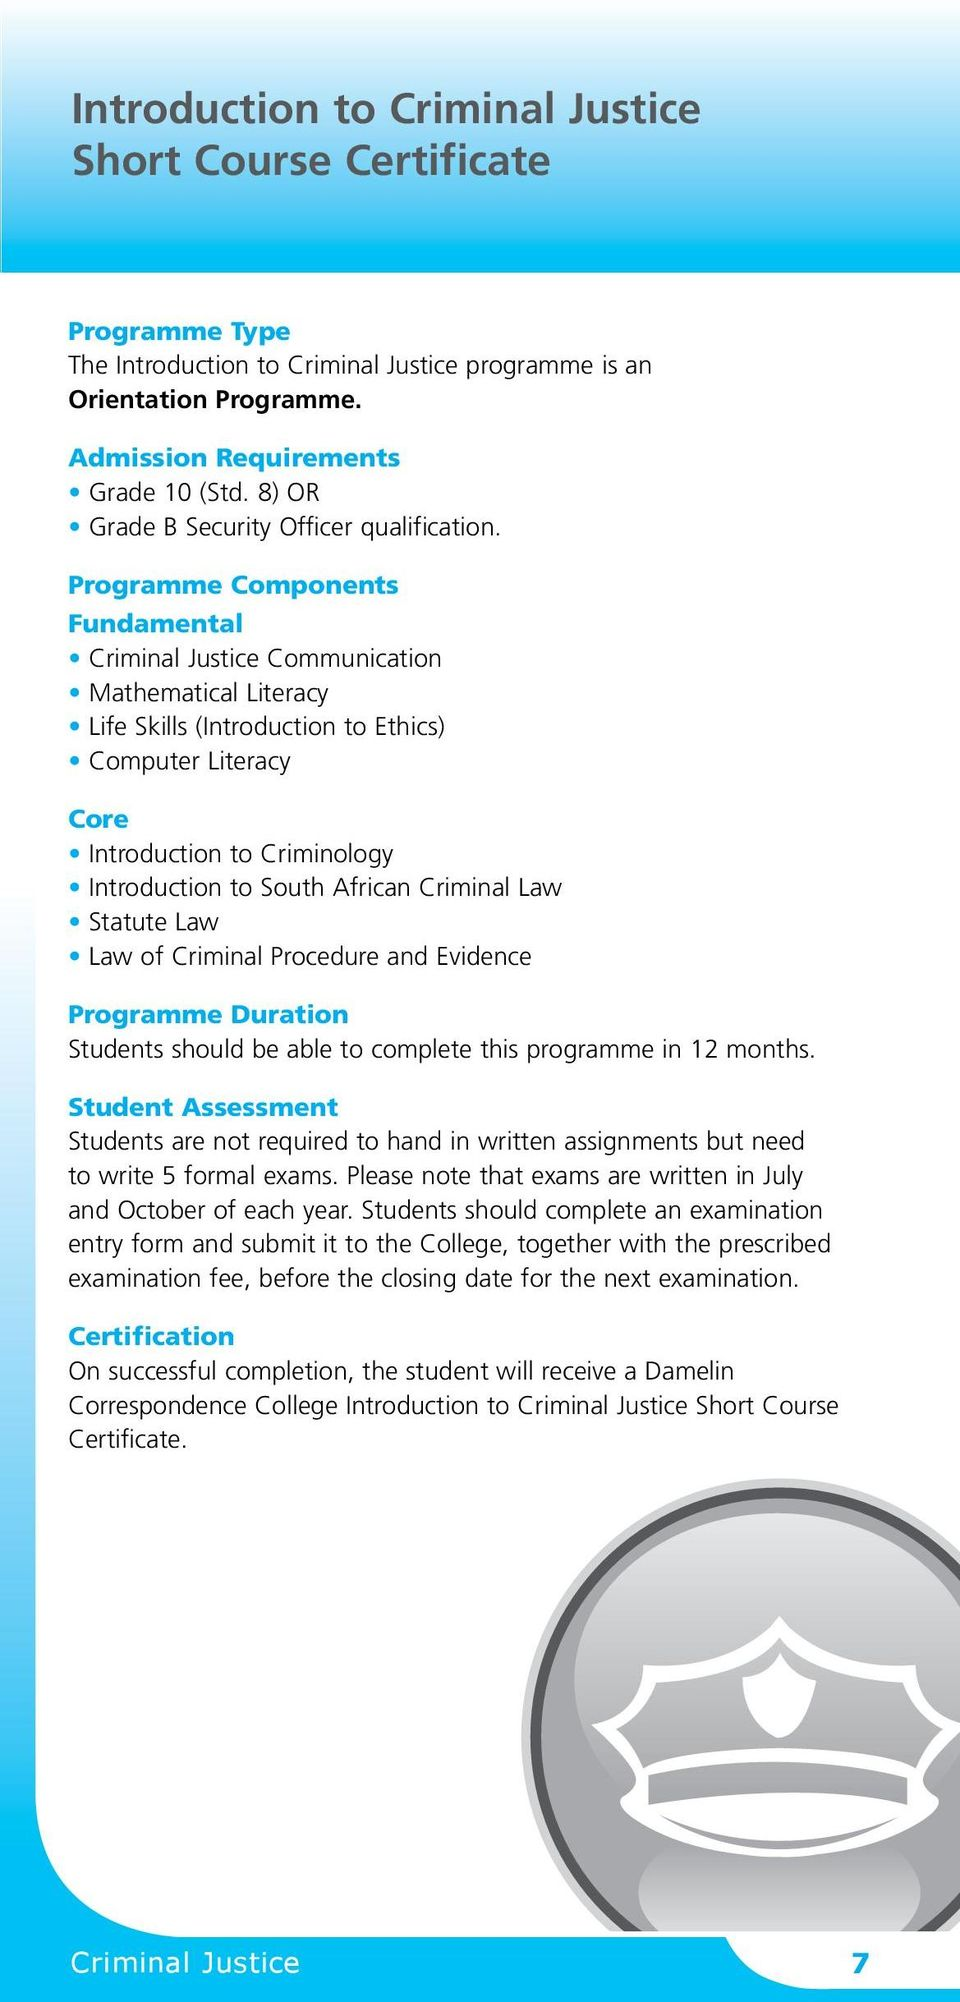 Programme Components Fundamental Criminal Justice Communication Mathematical Literacy Life Skills (Introduction to Ethics) Computer Literacy Core Introduction to Criminology Introduction to South